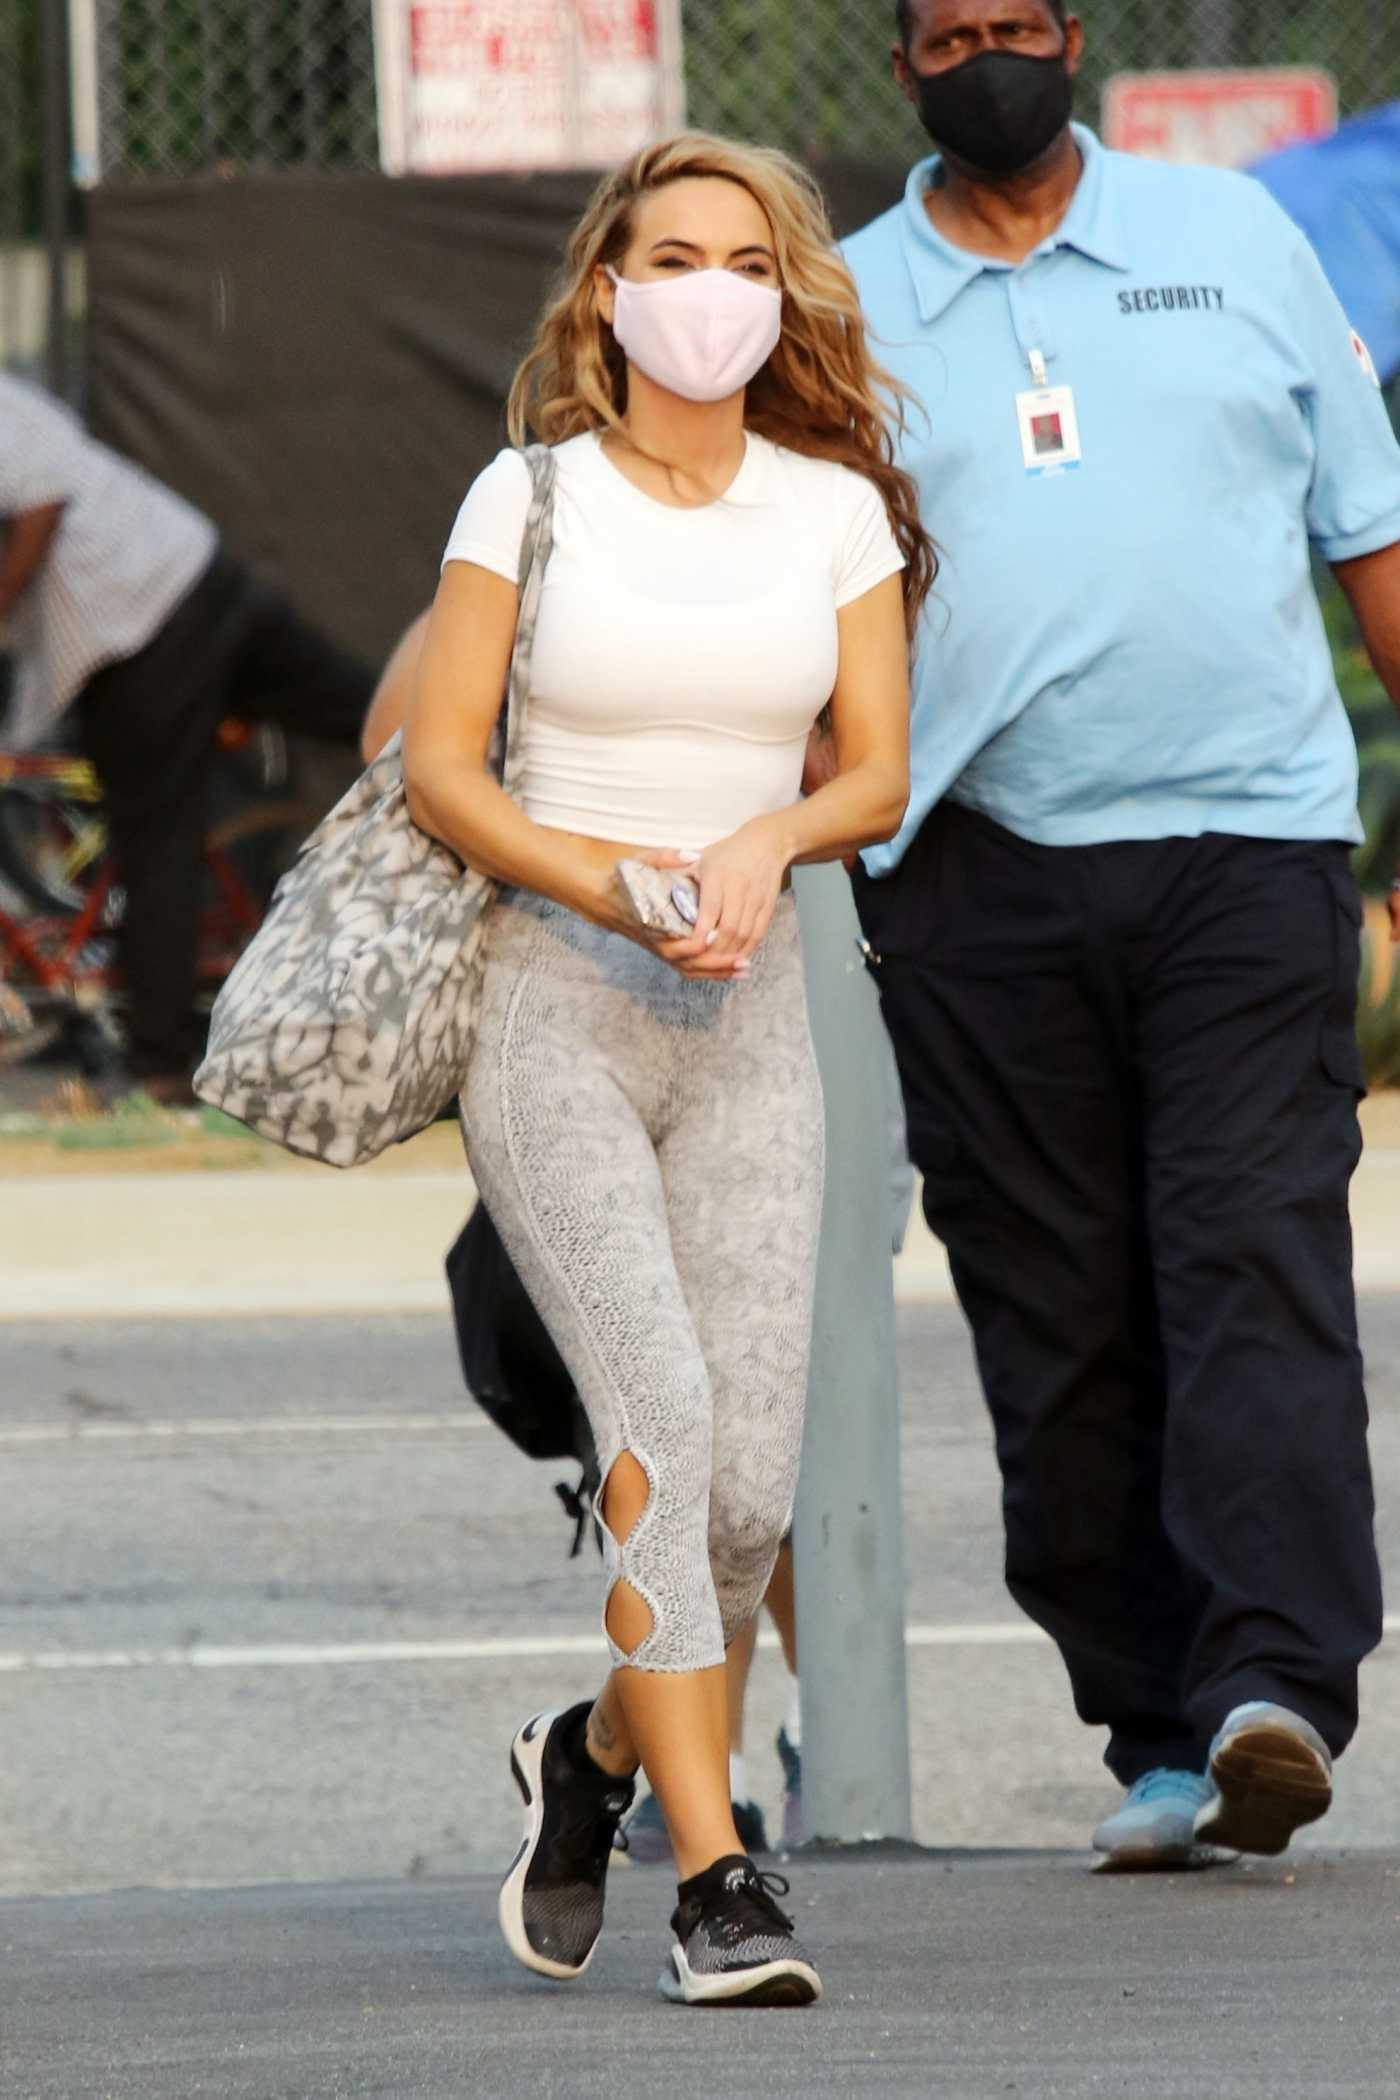 Chrishell Stause in a Protective Mask Exits the DWTS Studio in Los Angeles 09/09/2020